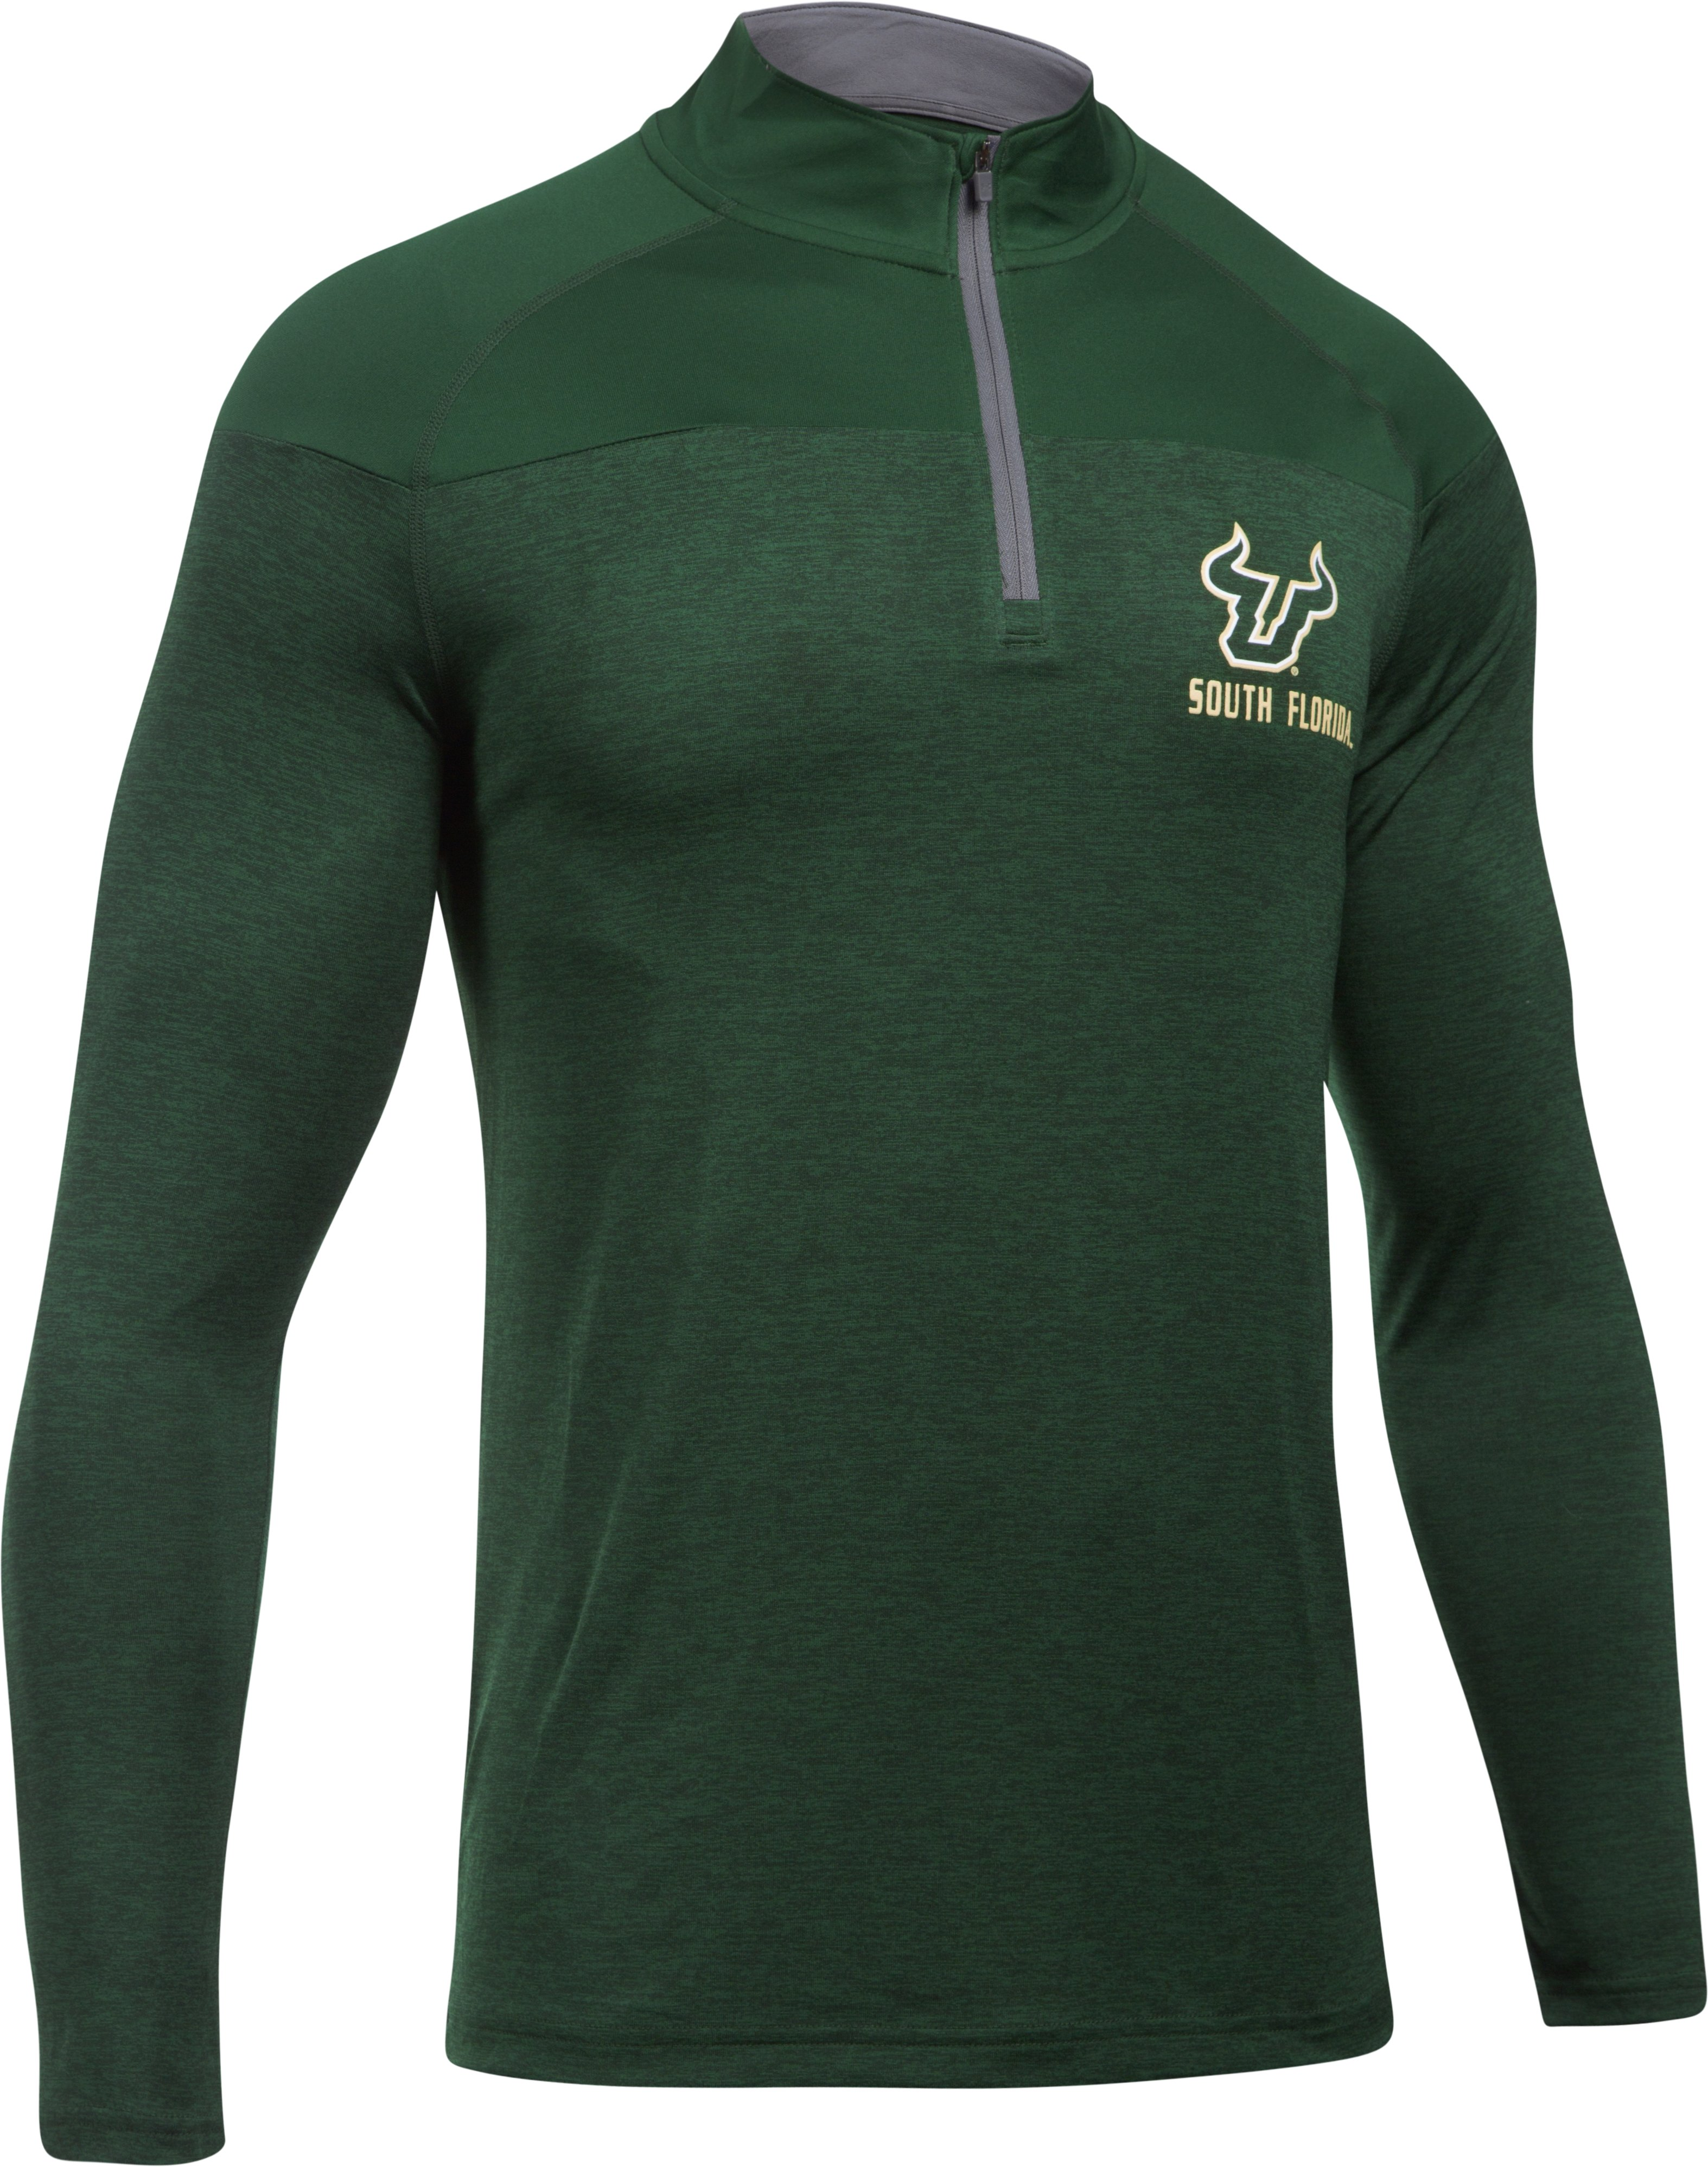 Men's South Florida Printed ¼ Zip, Forest Green,